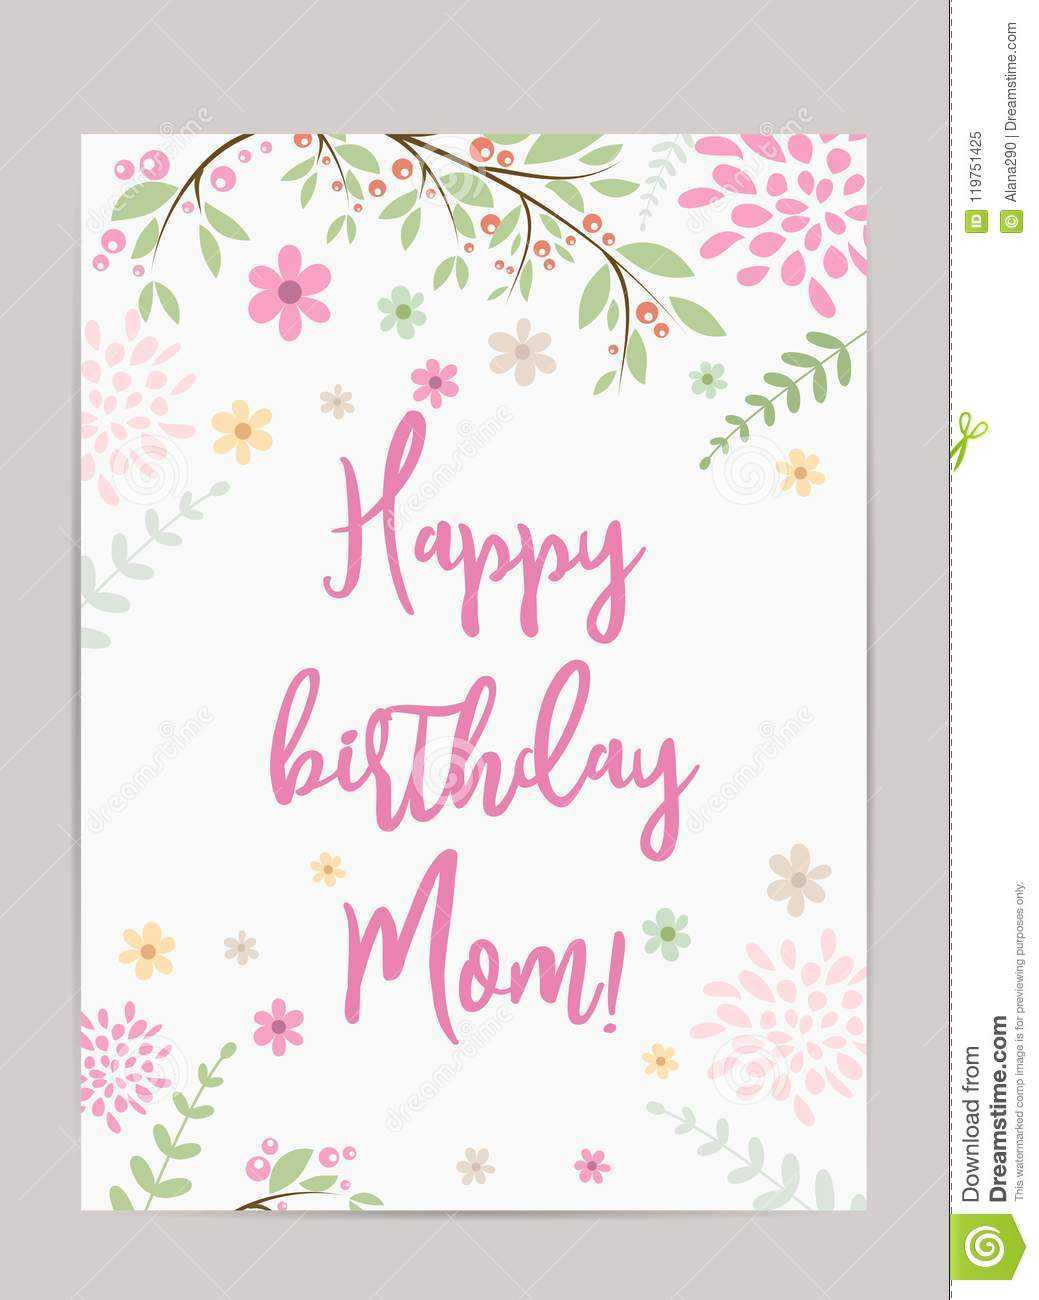 Happy Birthday Mom! Greeting Card Stock Vector For Mom Birthday Card Template